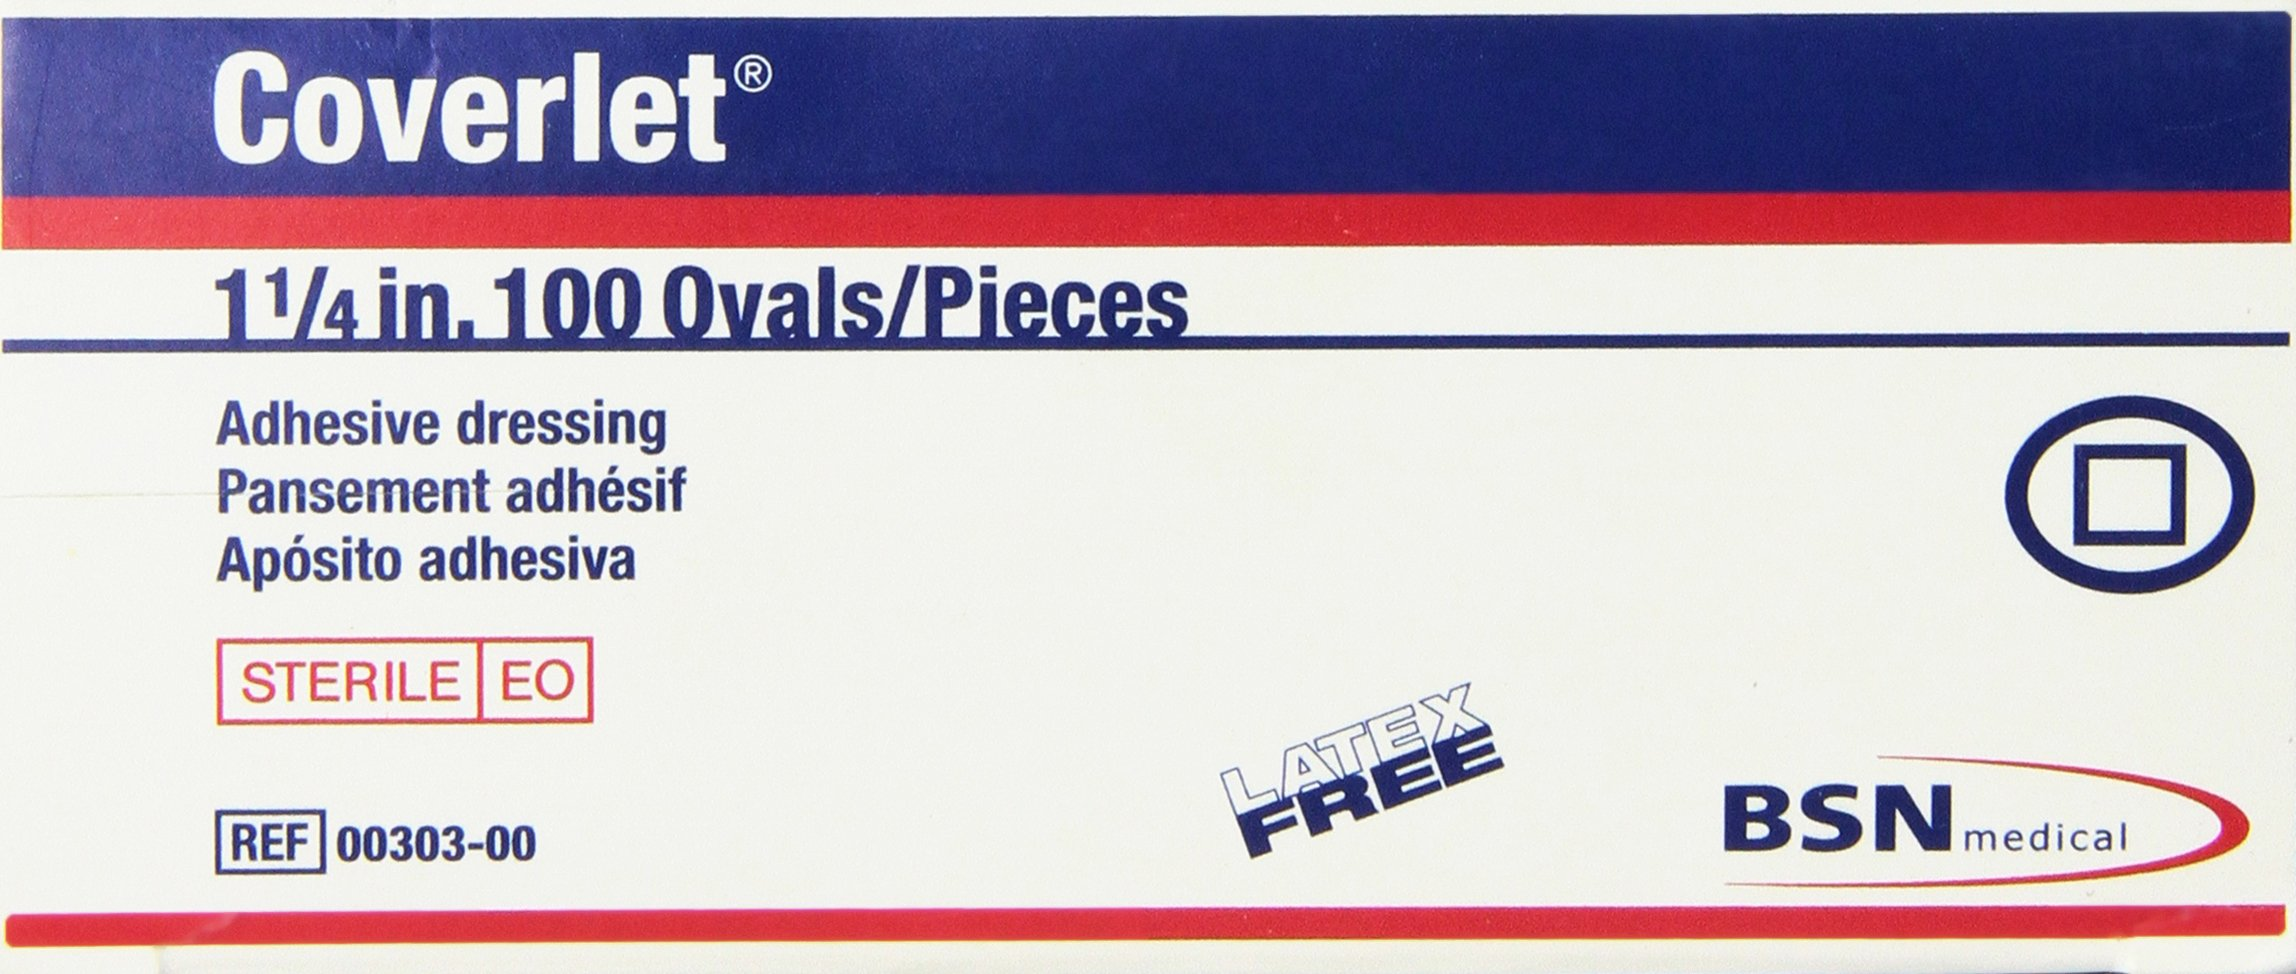 """Beiersdorf-jobst Coverlet Adhesive Dressing - 1 1/4 """" Oval - Box of 100, 100 Count"""